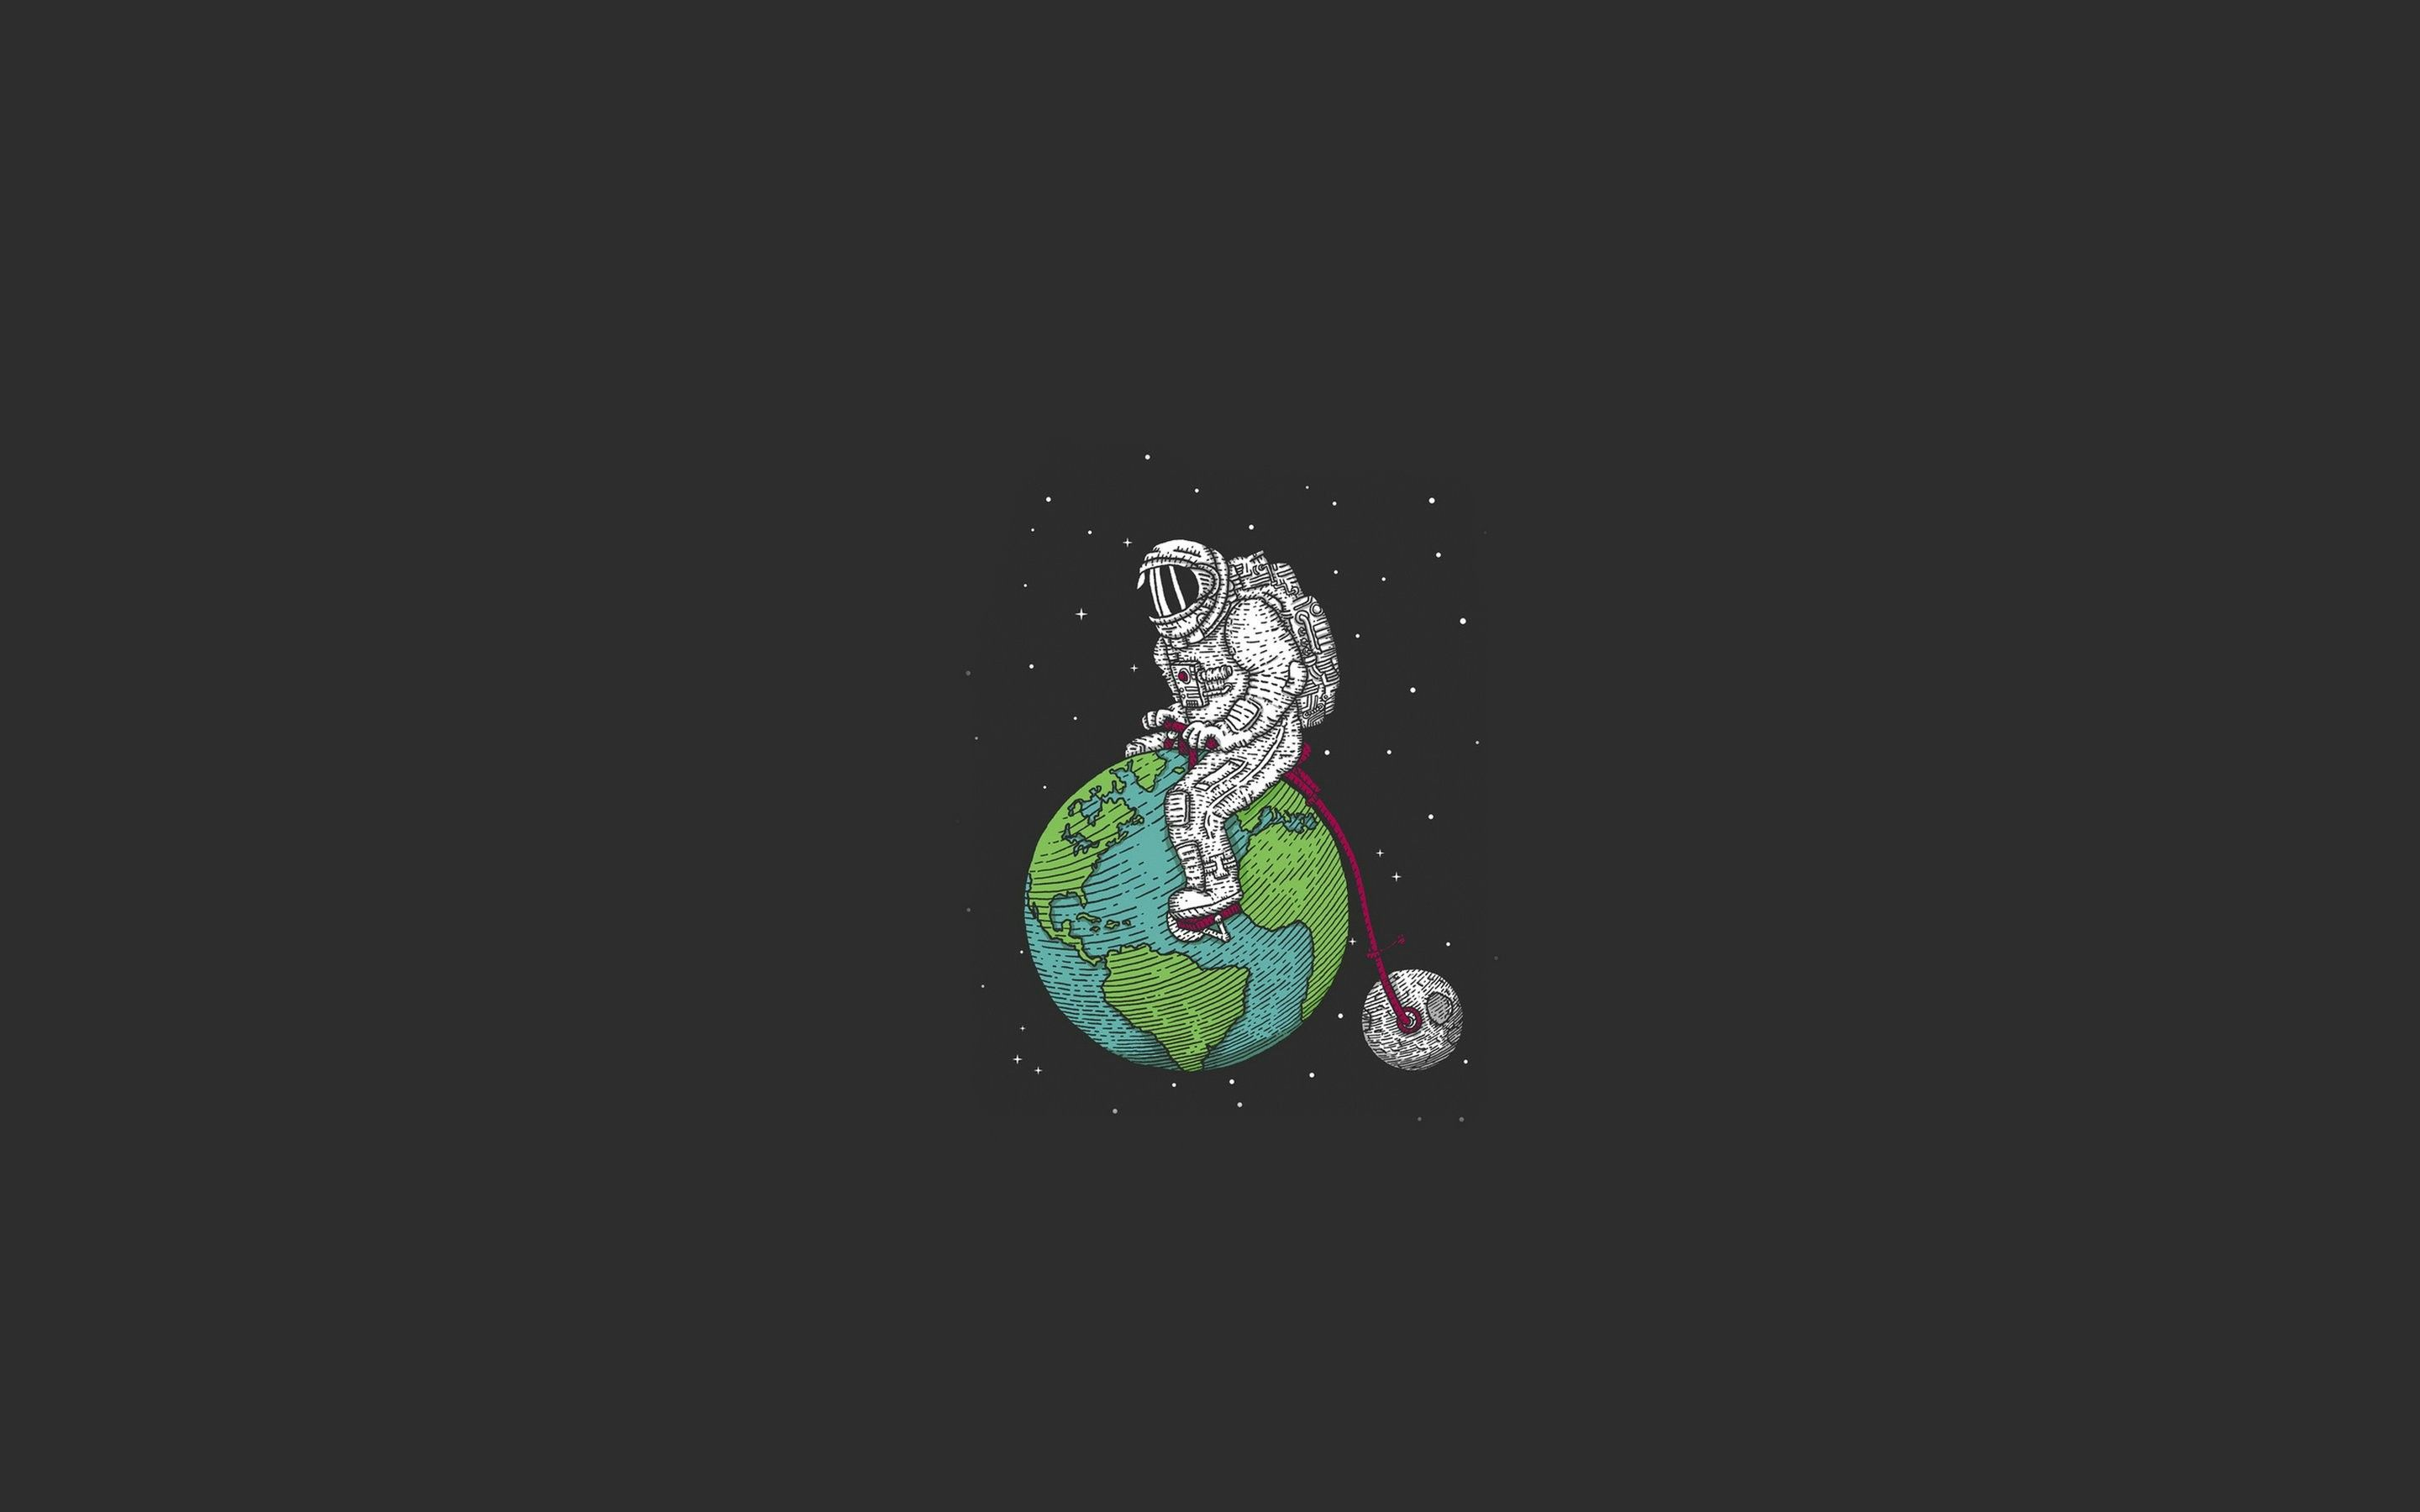 Funny Astronaut Wallpapers Top Free Funny Astronaut